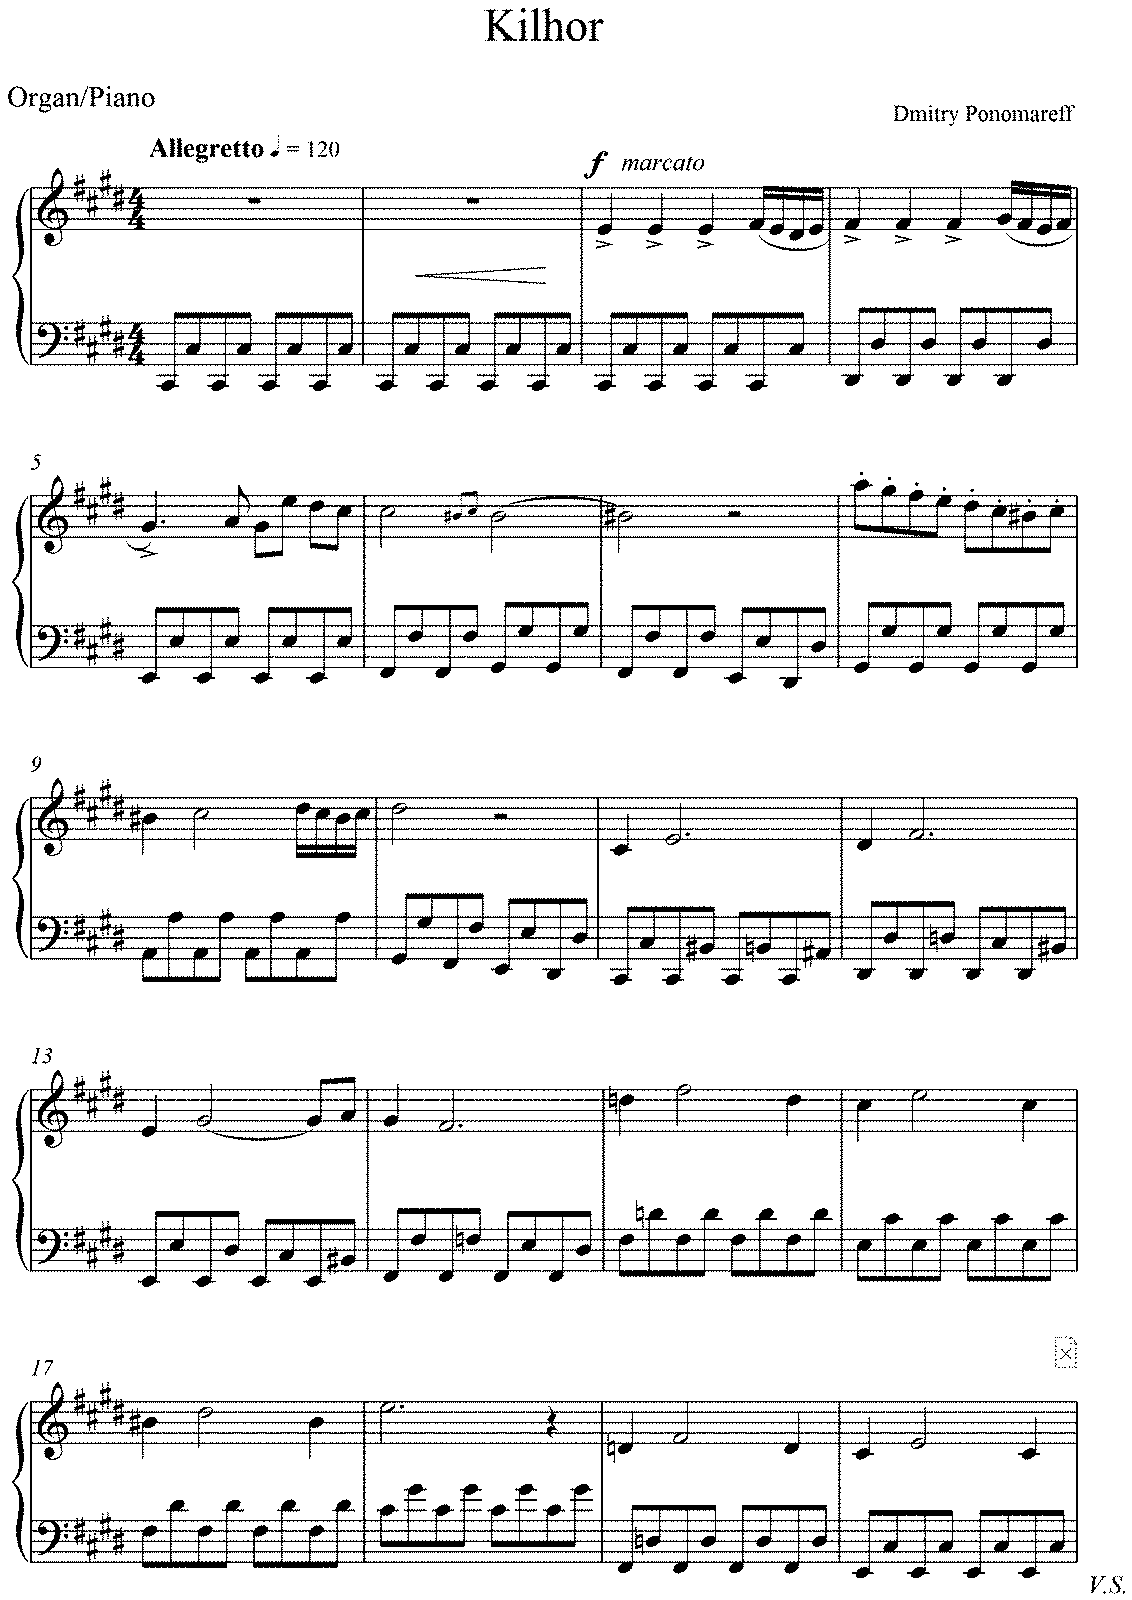 PMLP476989-Kilhor for organ or piano.pdf